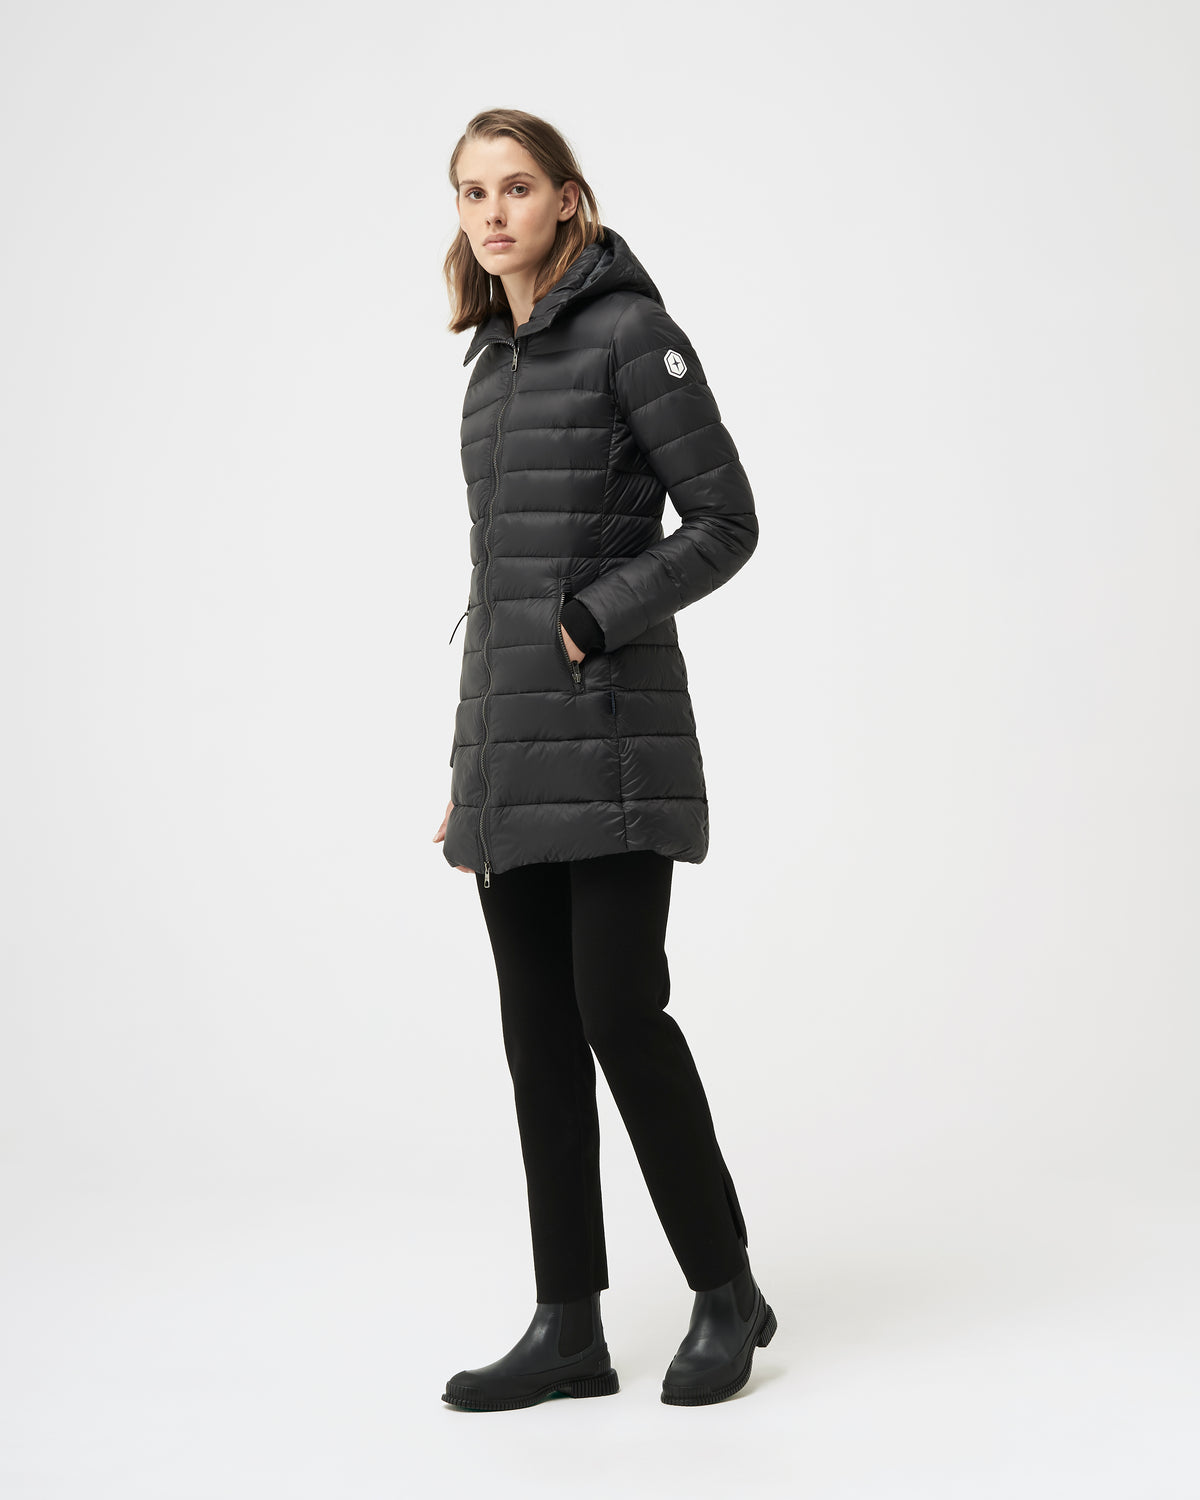 Quartz Co. - Canadian Made Winter Jackets | Woman | Lausanne | Women Down Lightweight jacket | Side